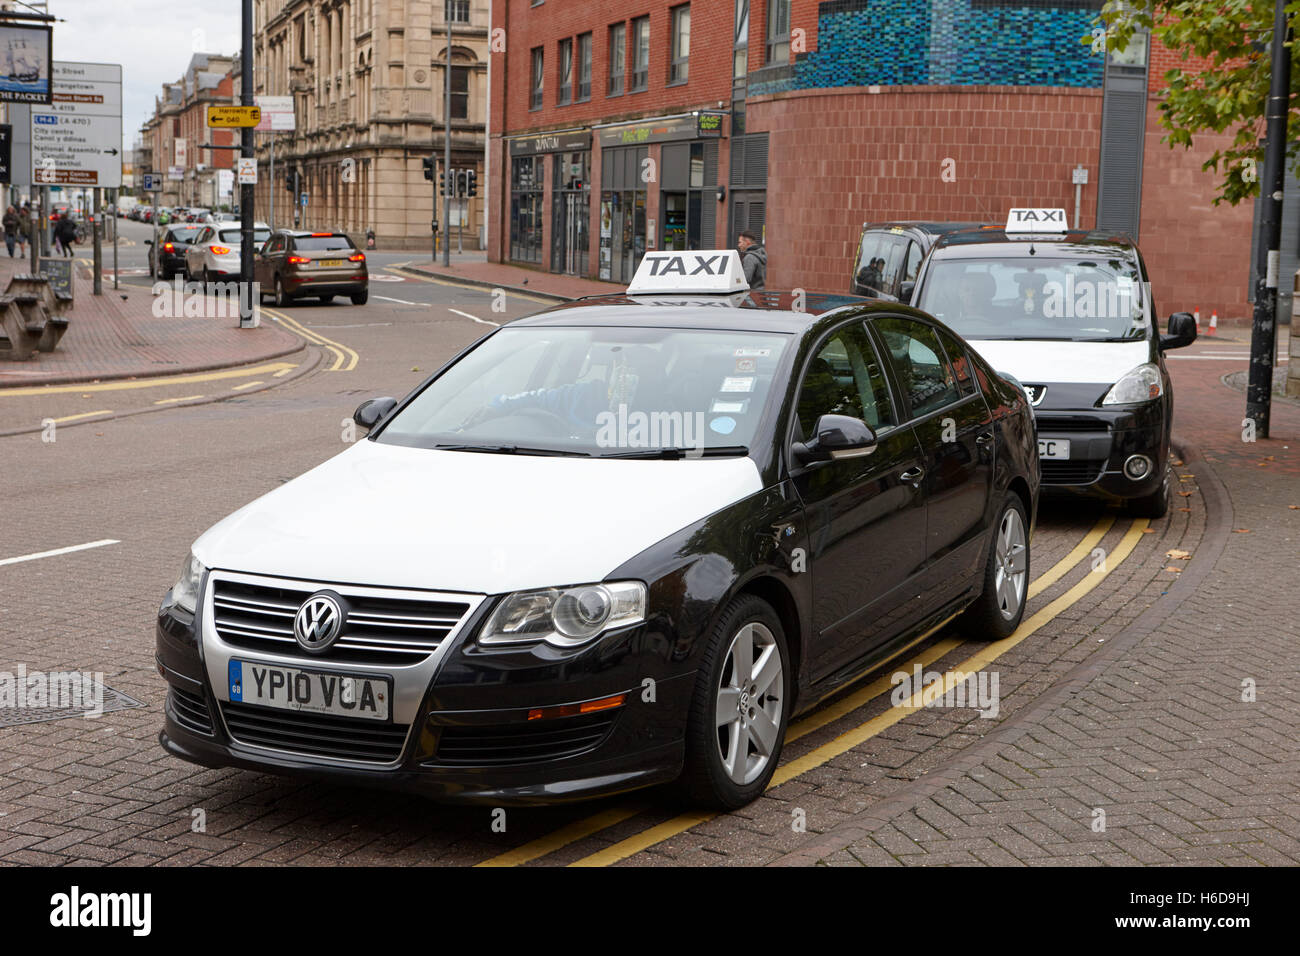 black and white taxis on a cab rank in cardiff wales. Black Bedroom Furniture Sets. Home Design Ideas